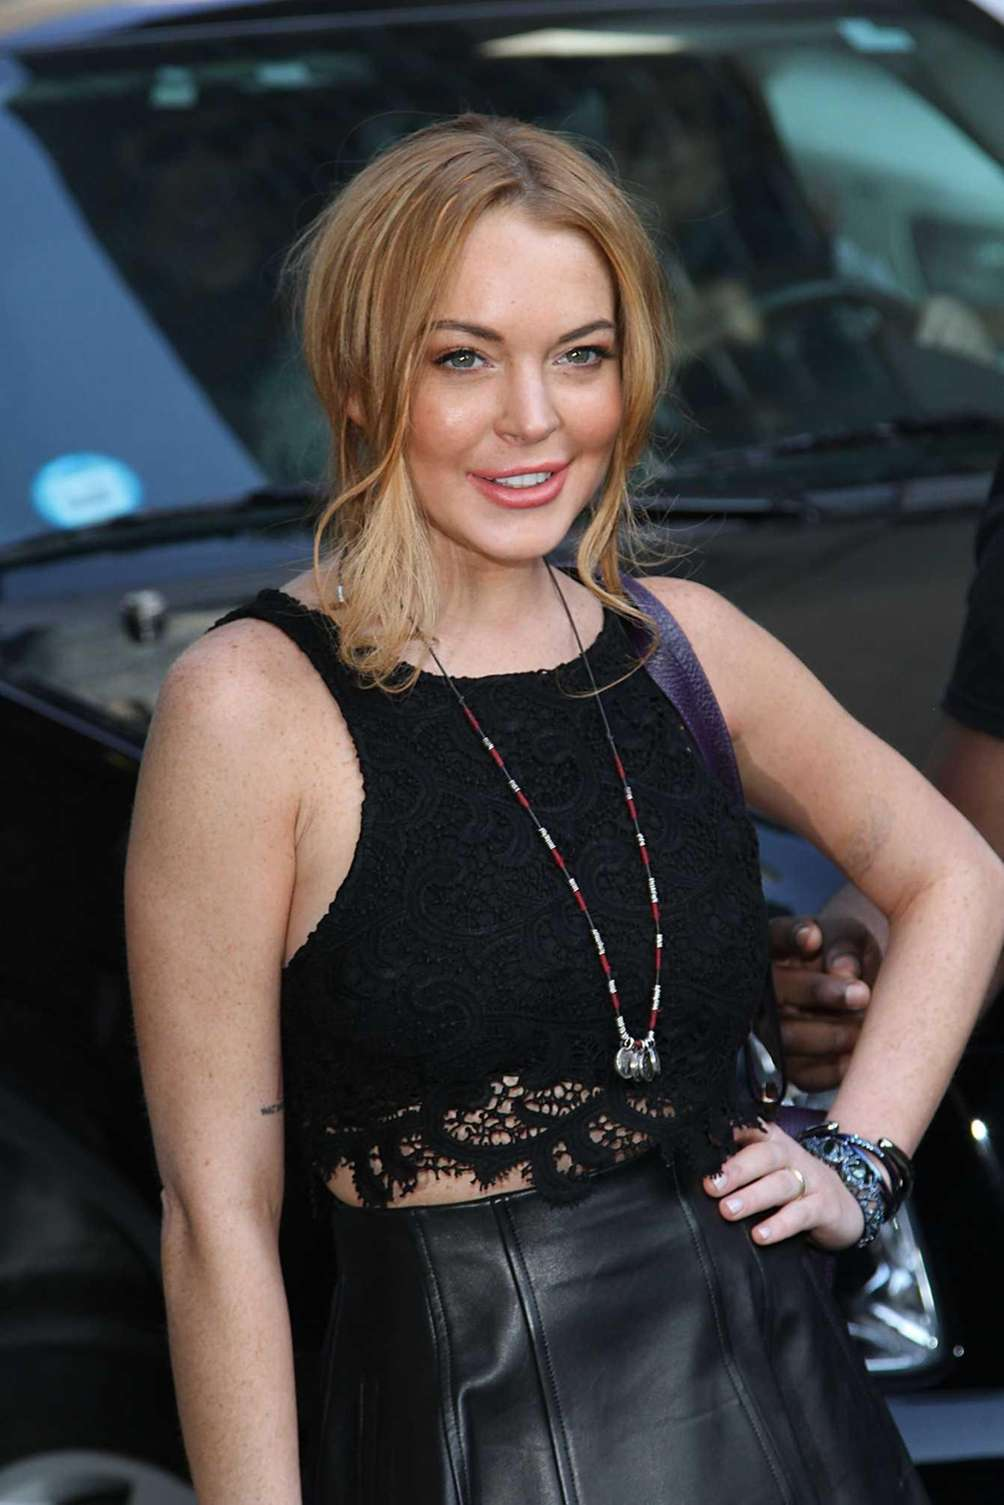 Lindsay Lohan departs the Ed Sullivan Theater after